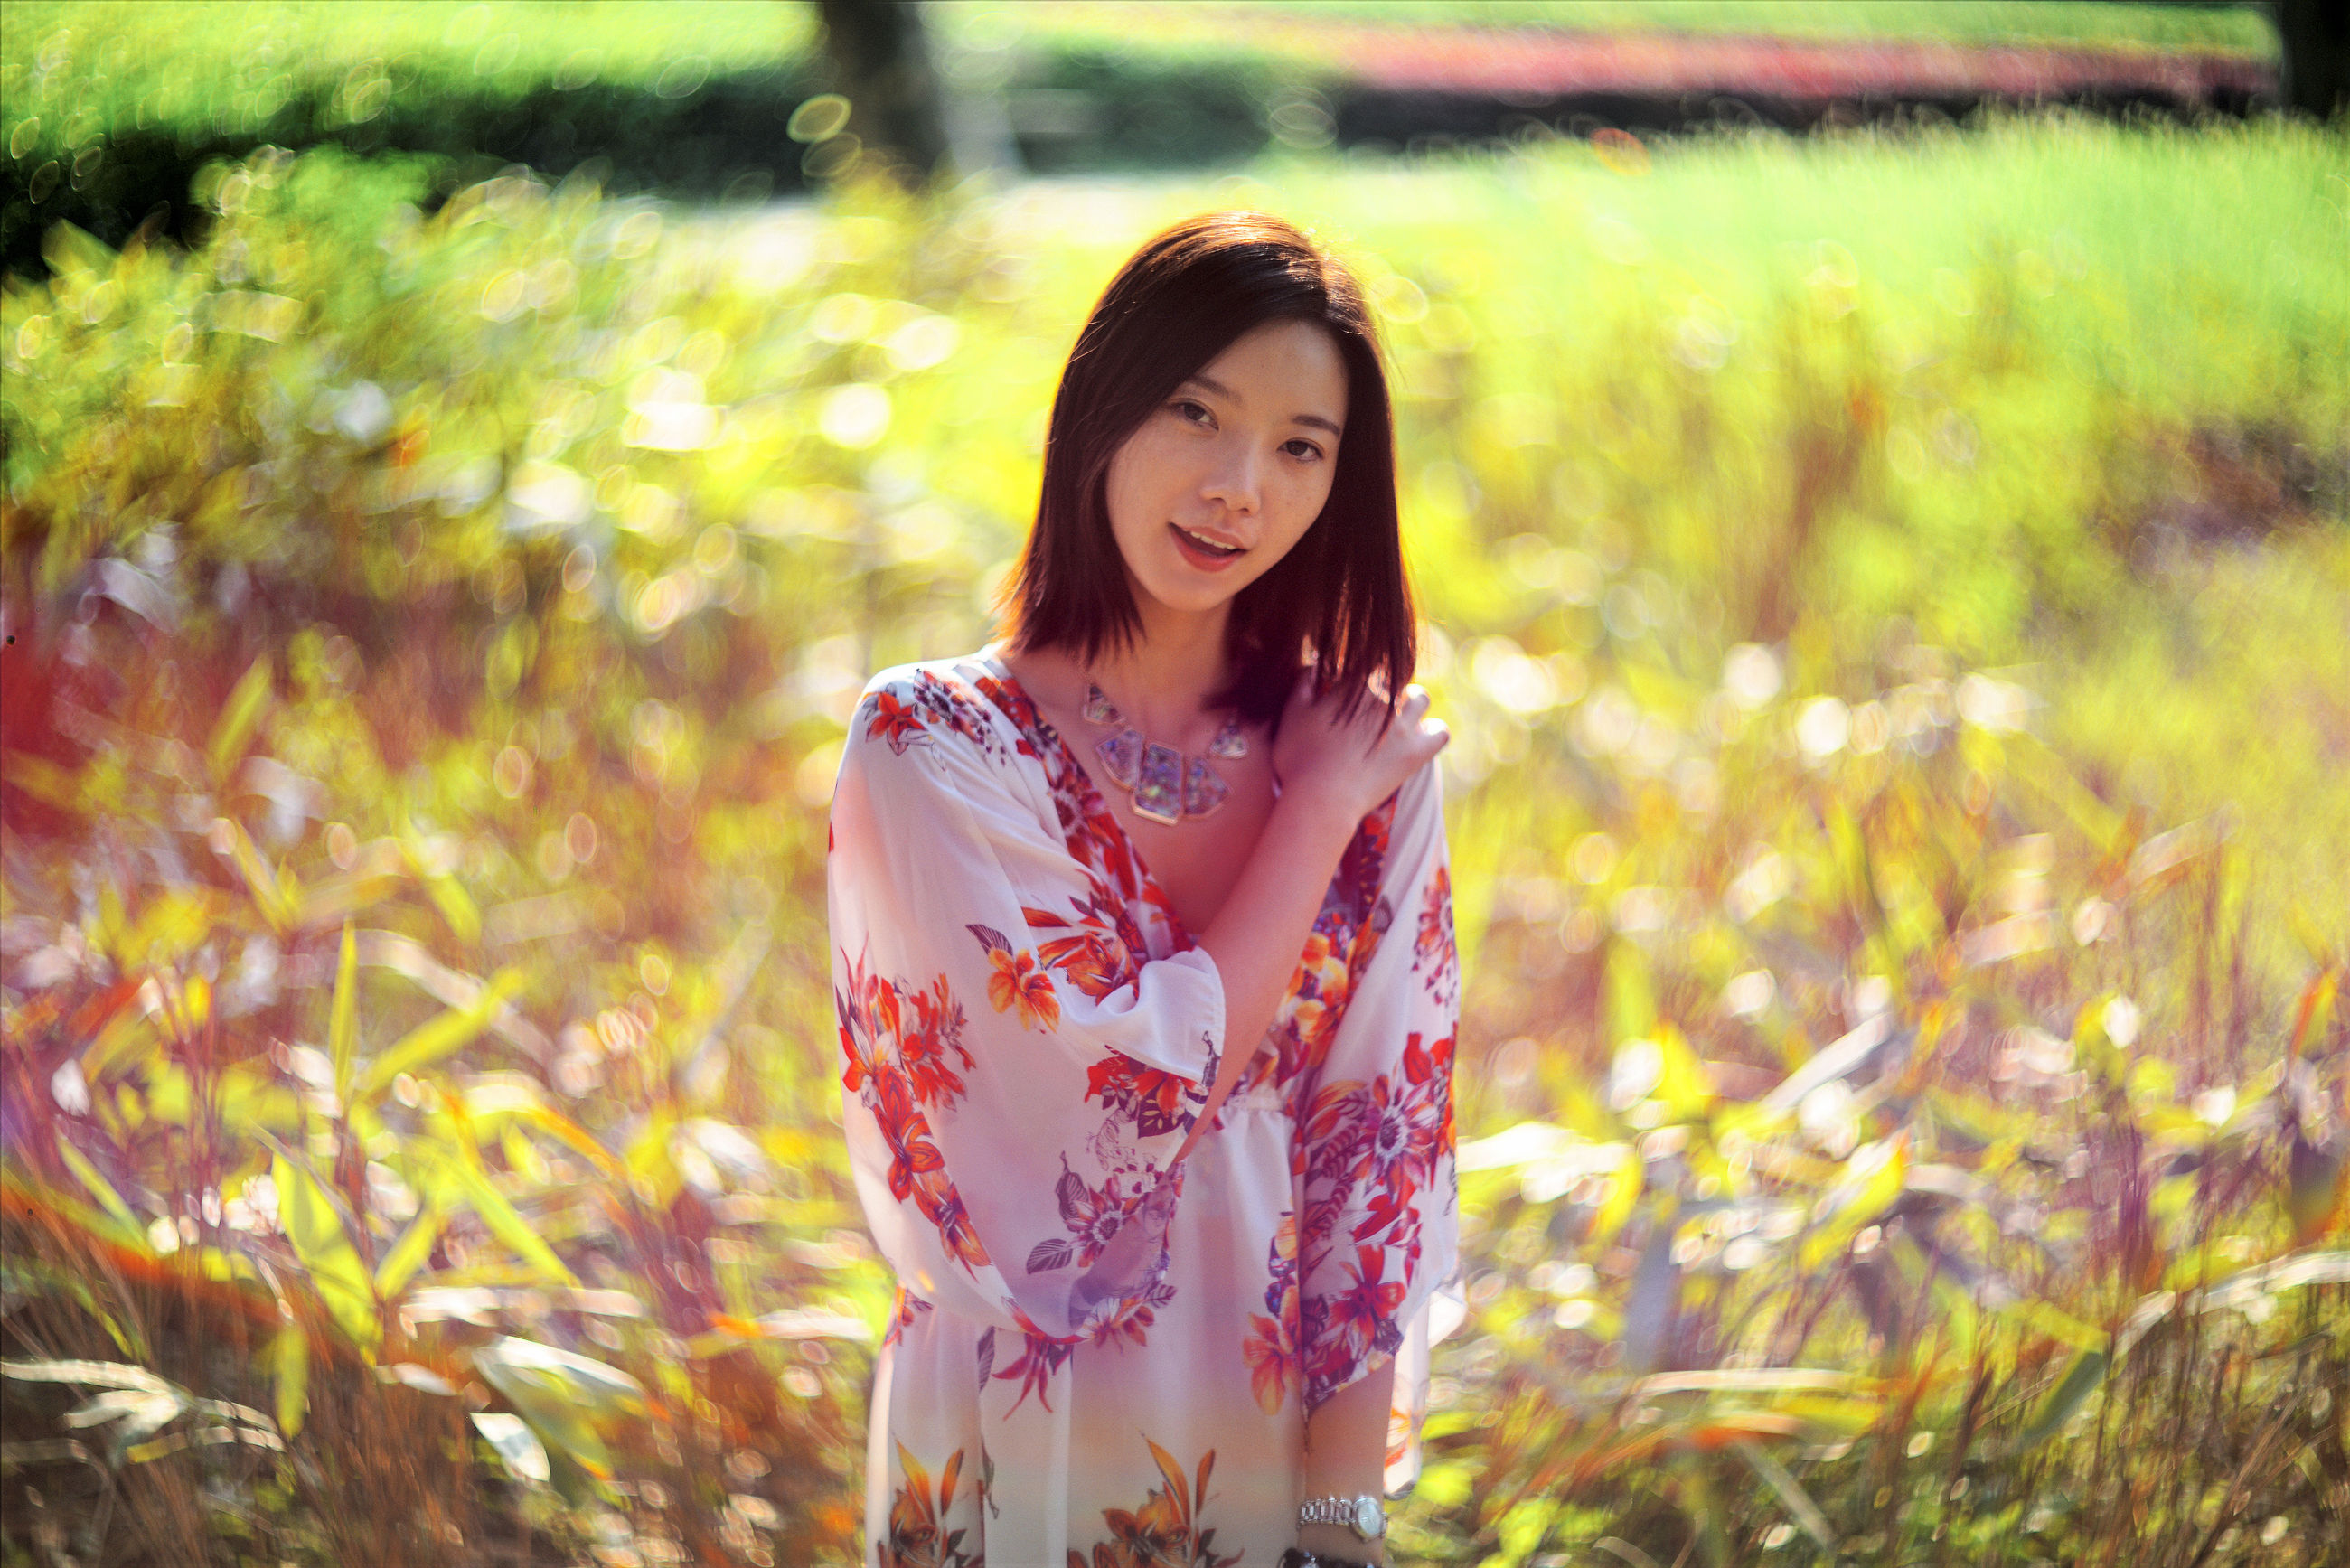 looking at camera, portrait, person, front view, lifestyles, young adult, young women, focus on foreground, standing, smiling, leisure activity, casual clothing, grass, three quarter length, field, happiness, waist up